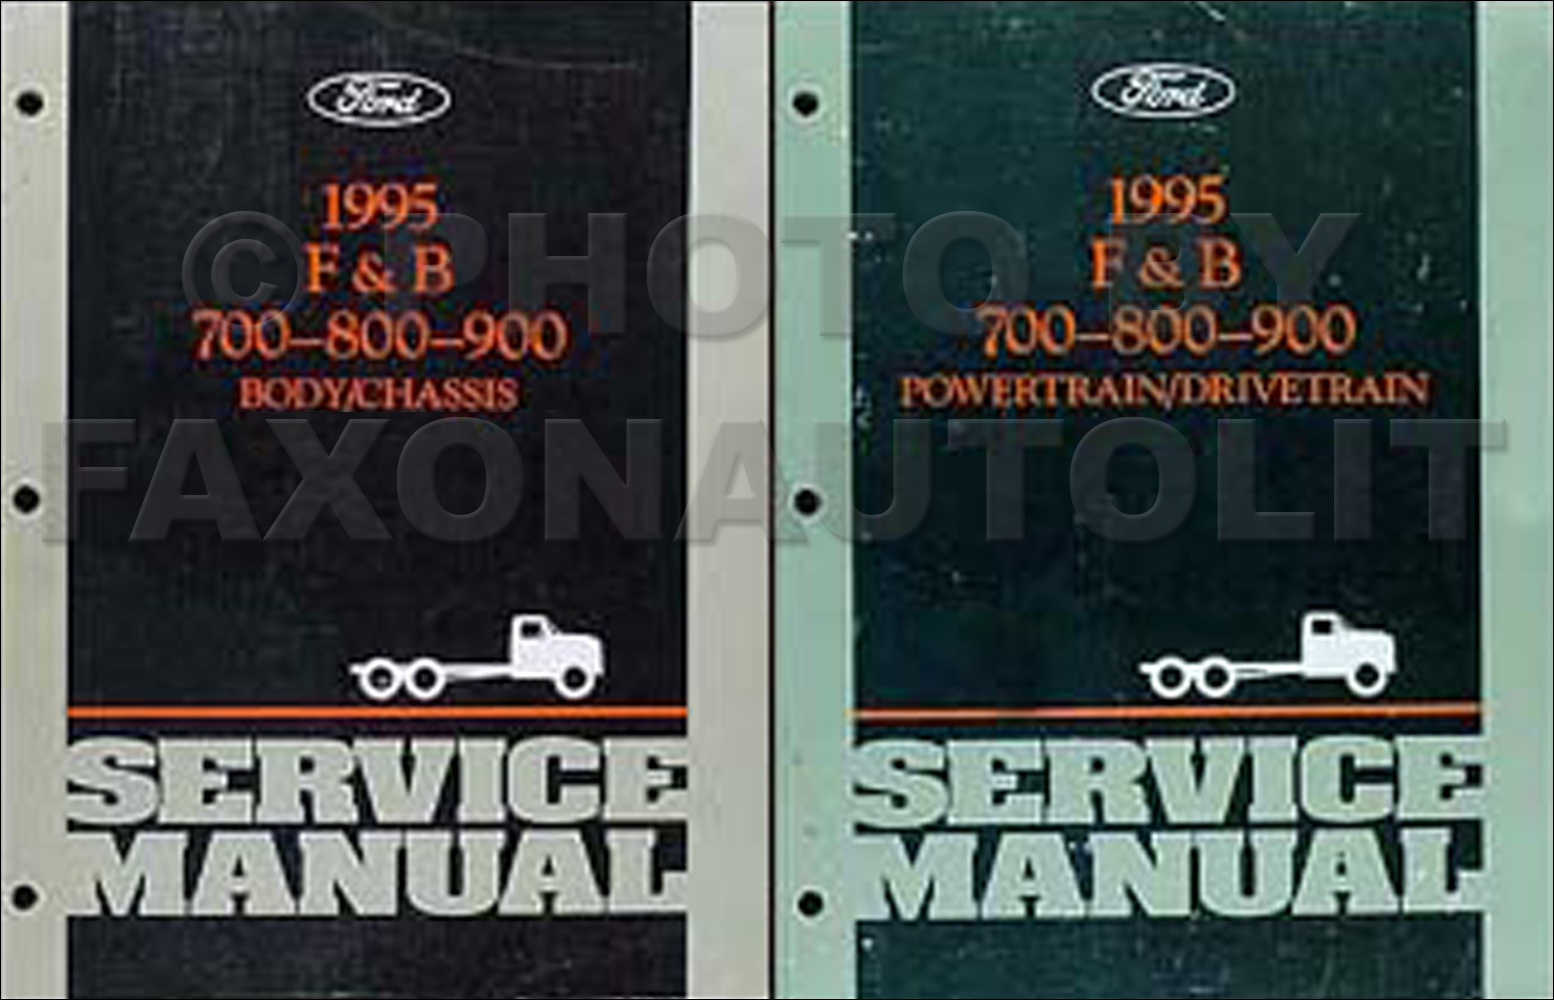 1995 Ford F and B 700 through 900 Medium/Heavy Truck Repair Shop Manual Set